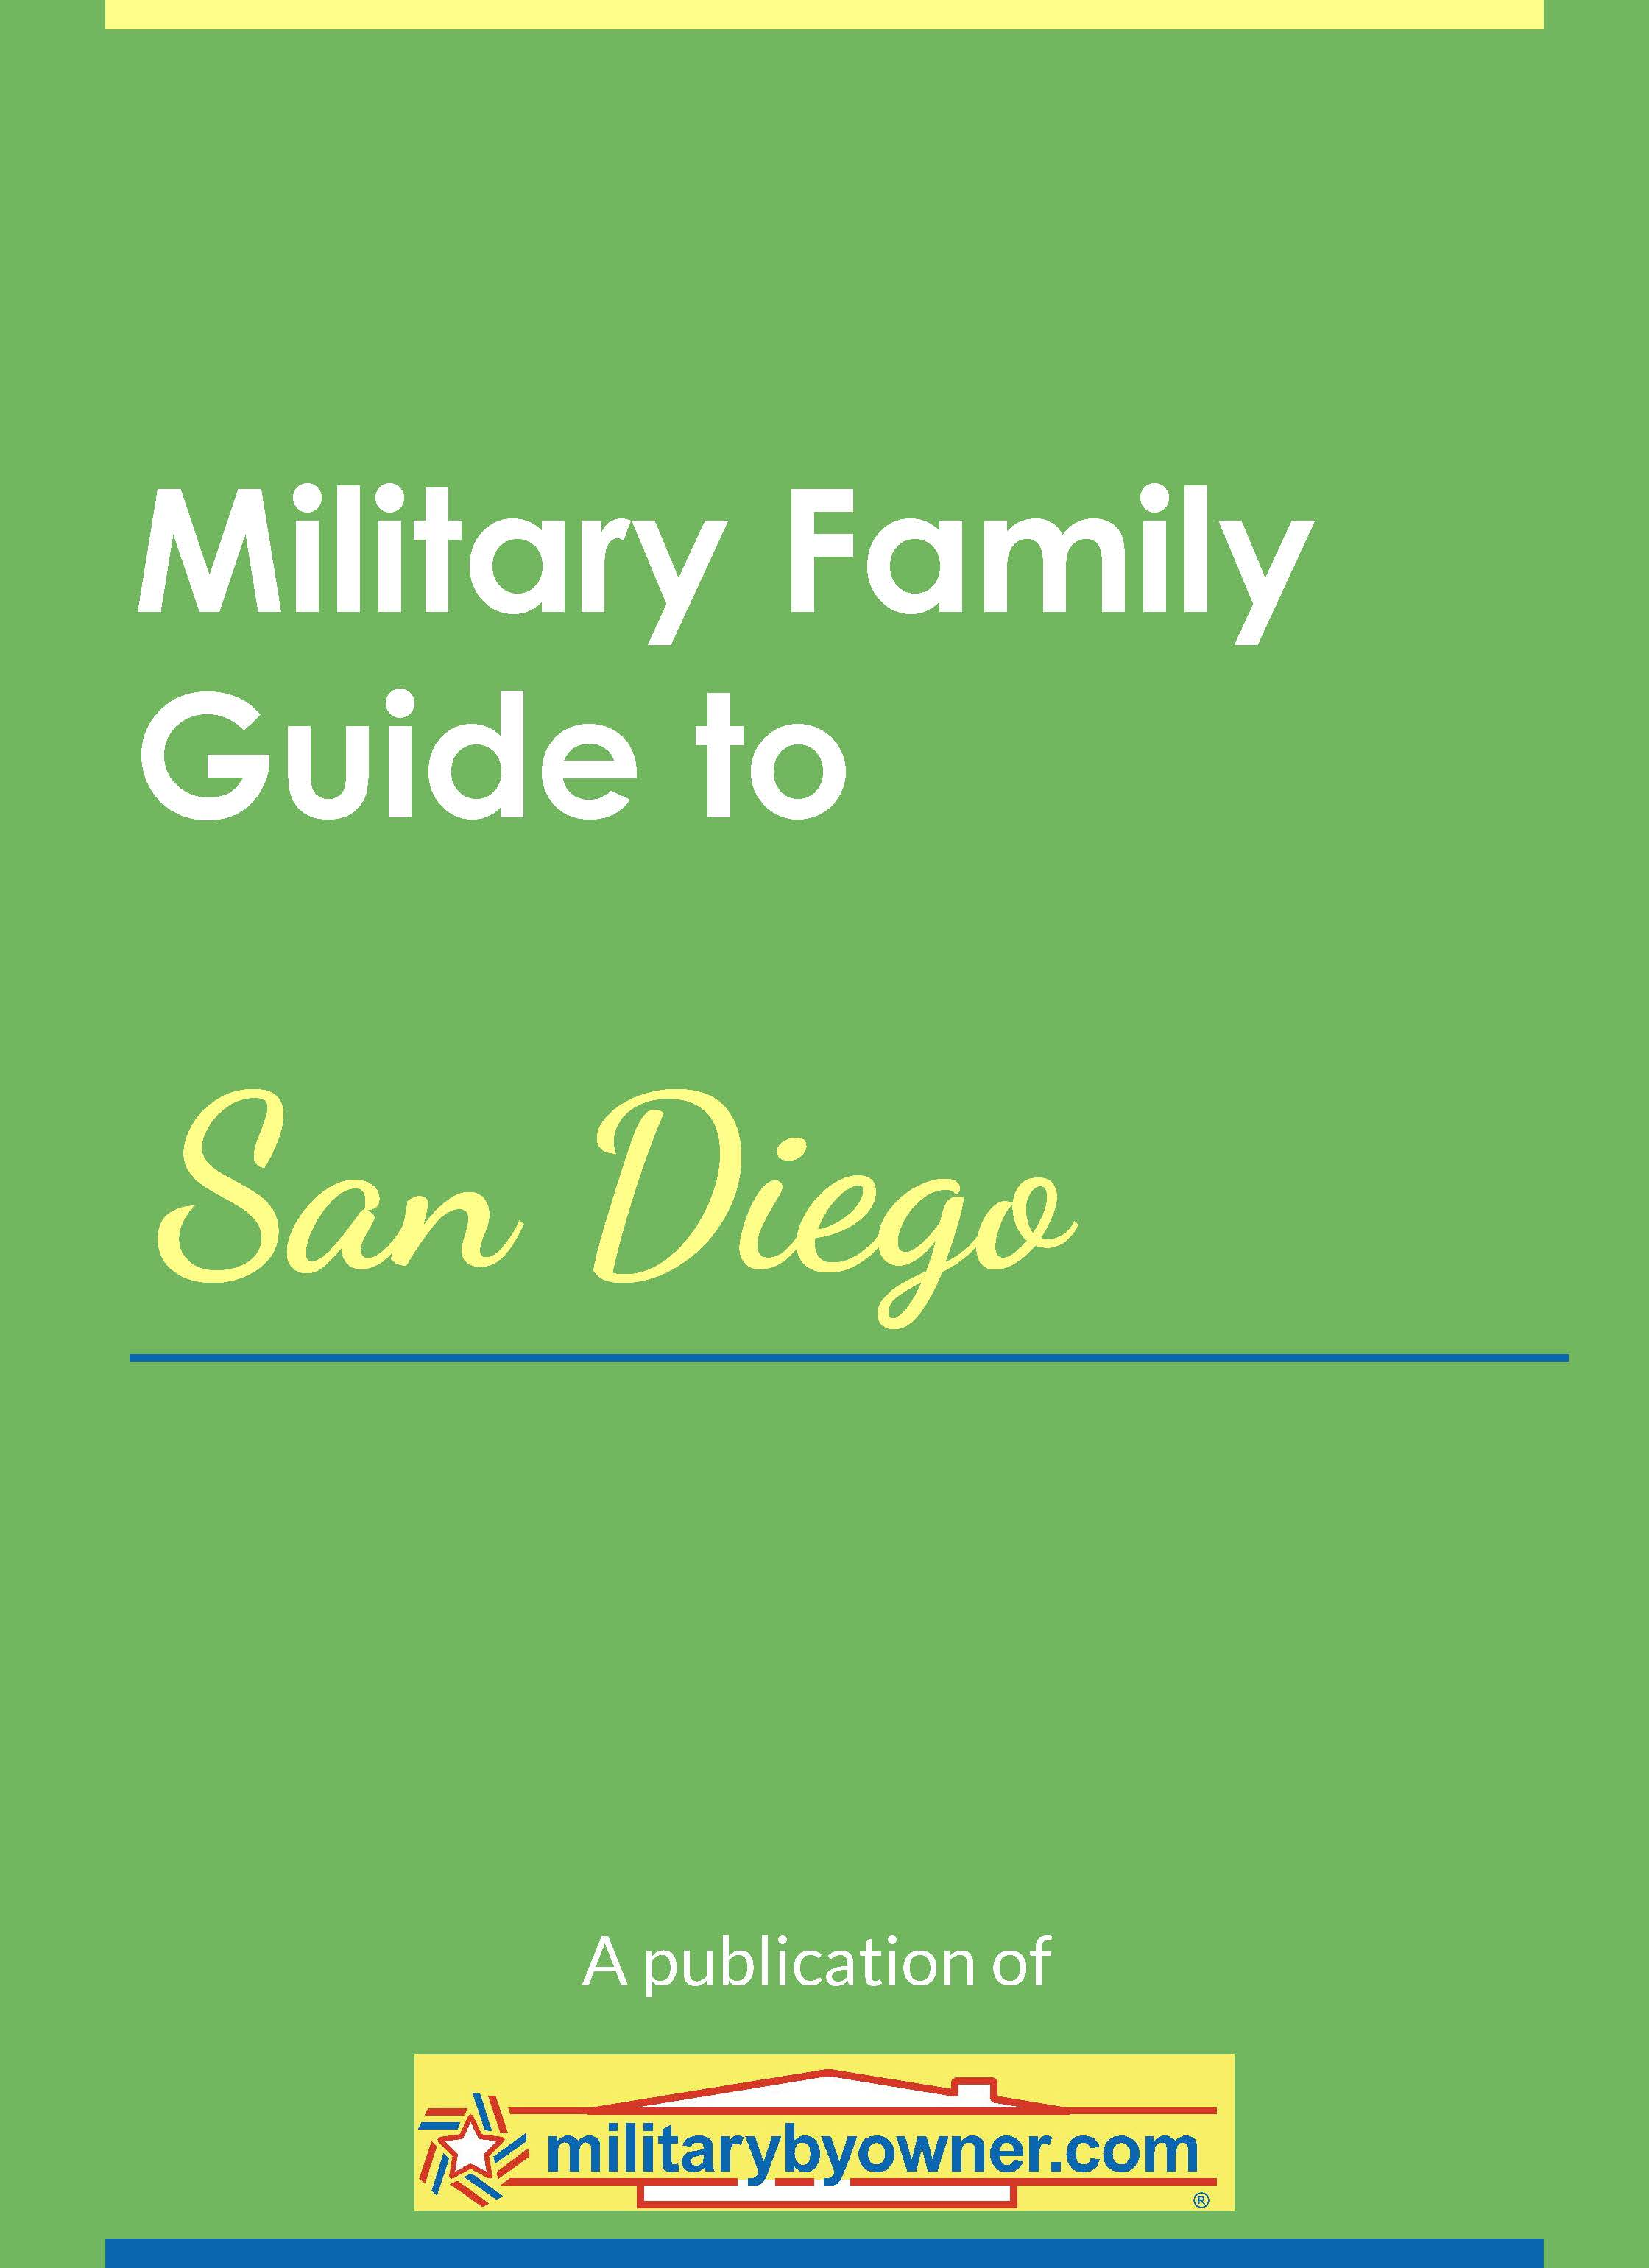 Military Family Guide to San Diego